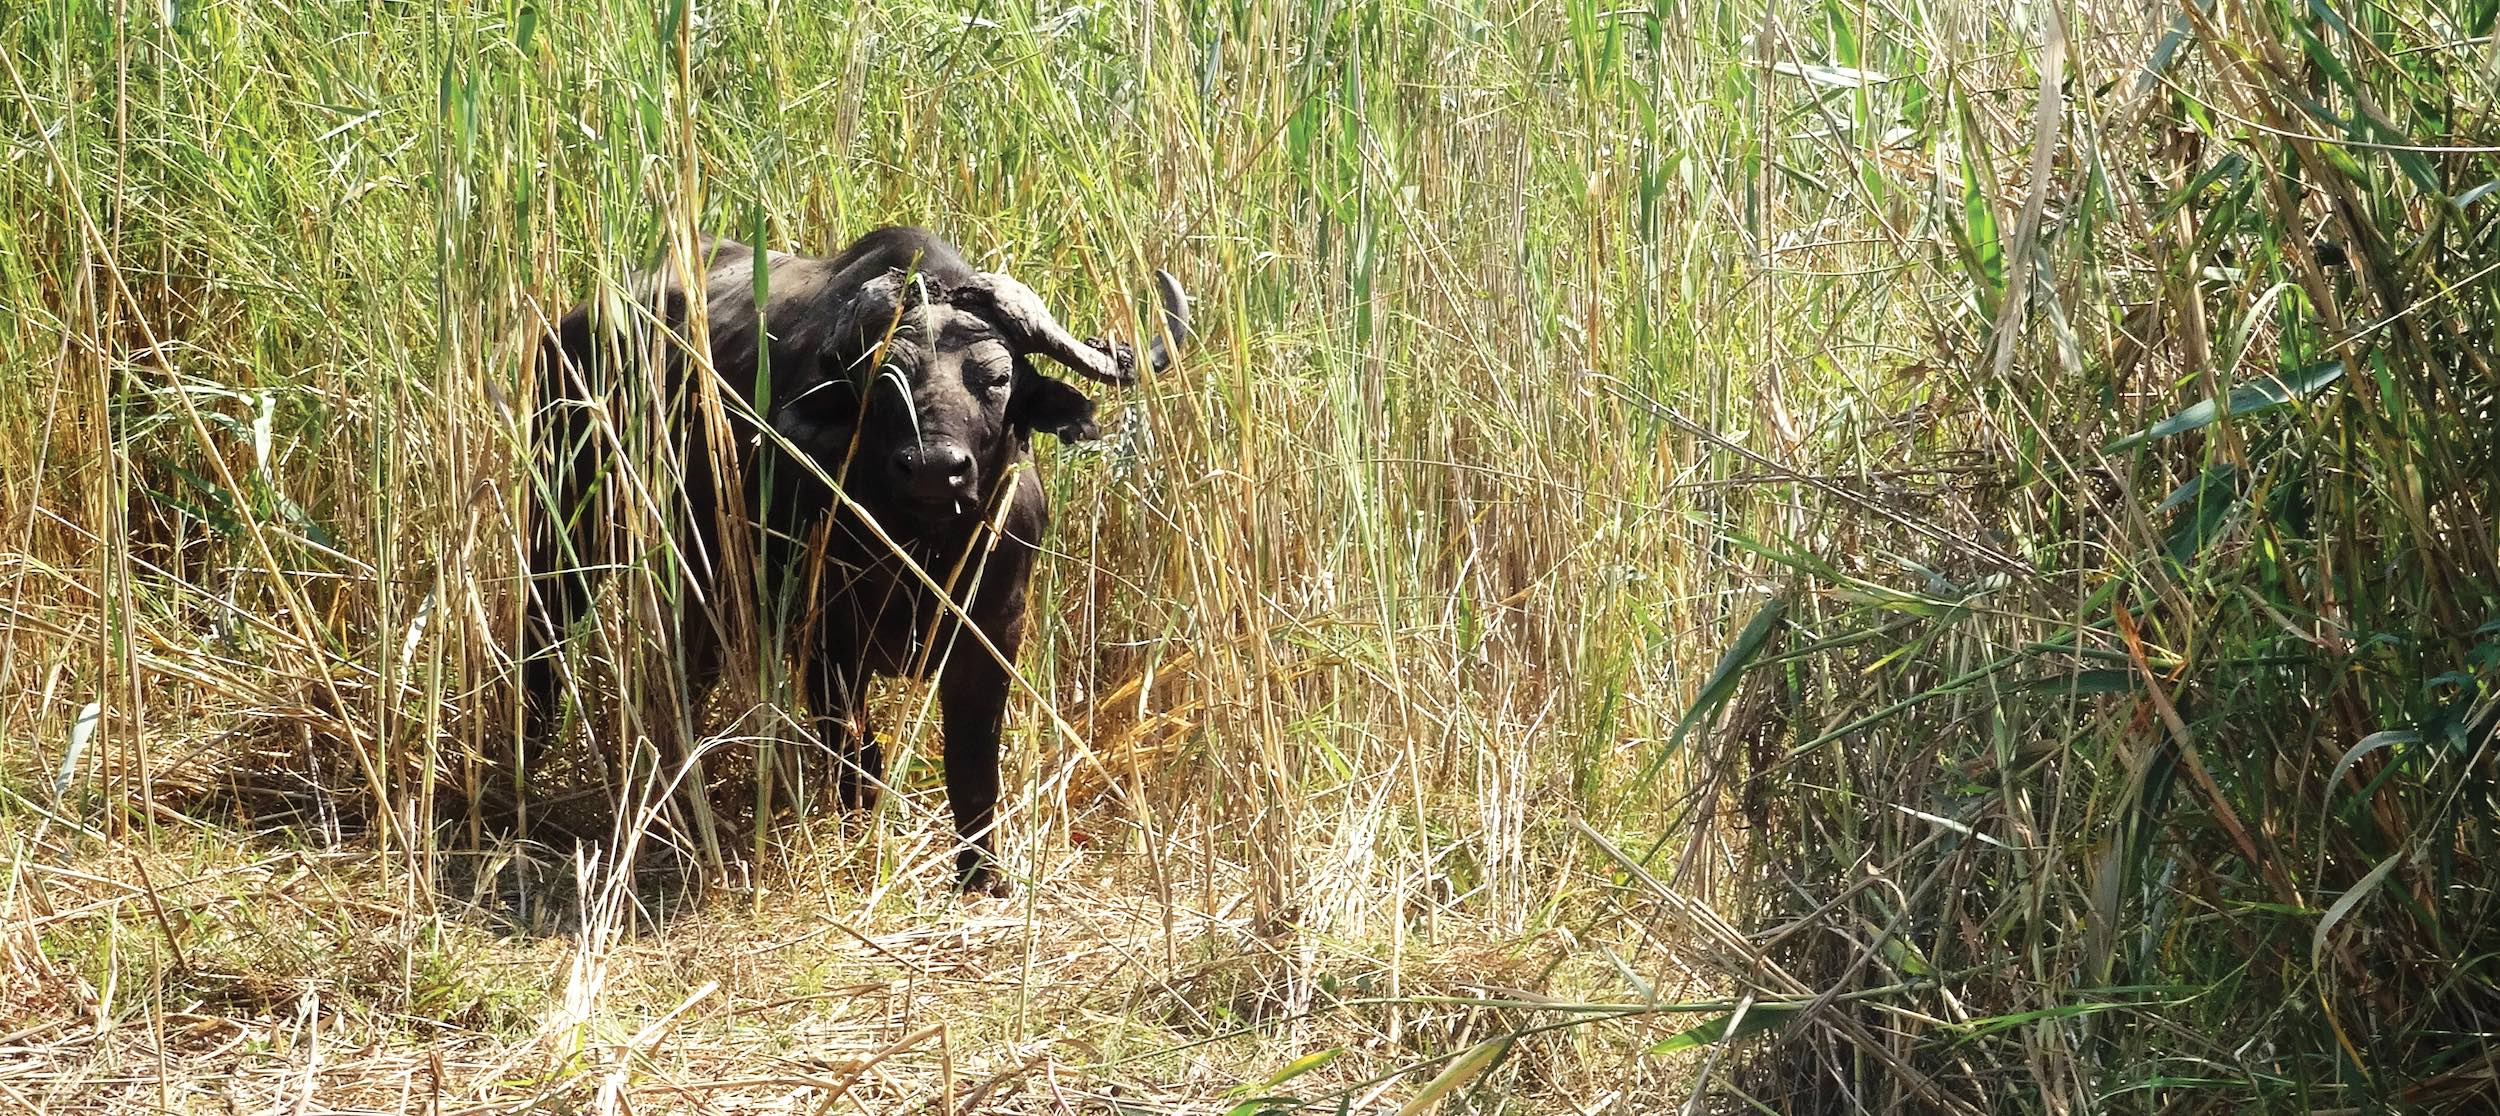 A large buffalo gazes out from concealment in thick reeds.